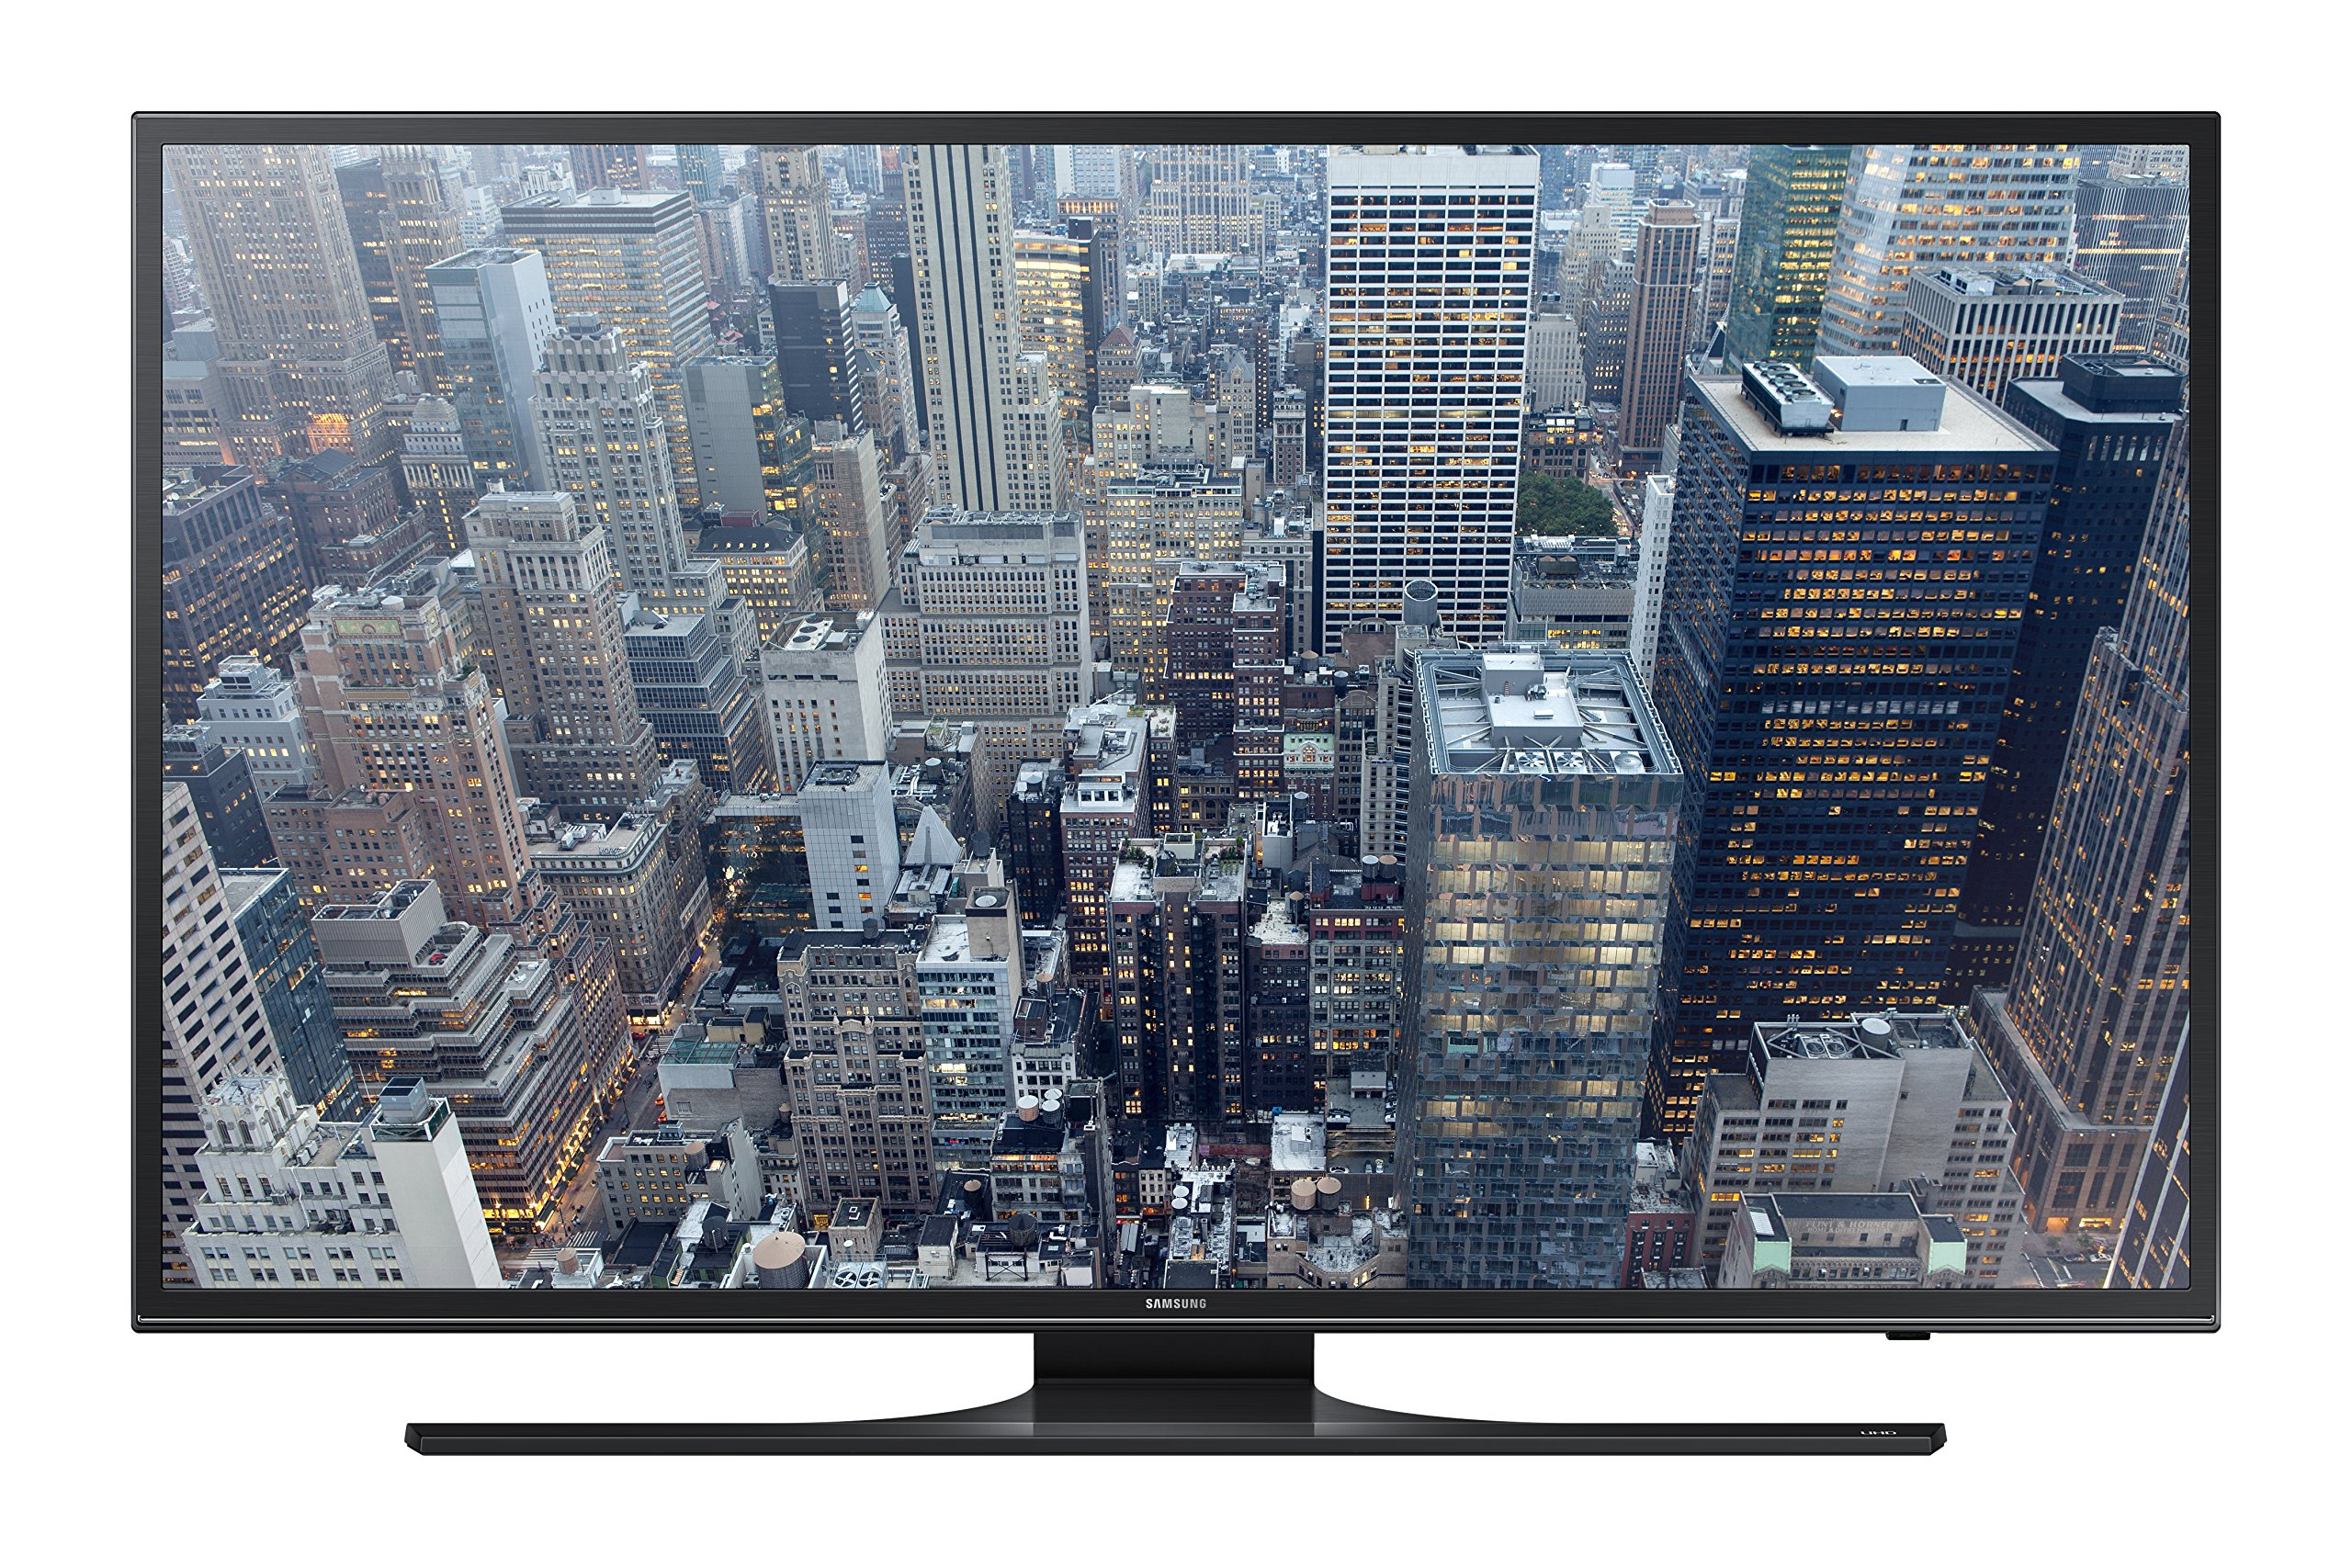 Samsung UN60JU6500 60-Inch 4K Ultra HD Smart LED TV Review